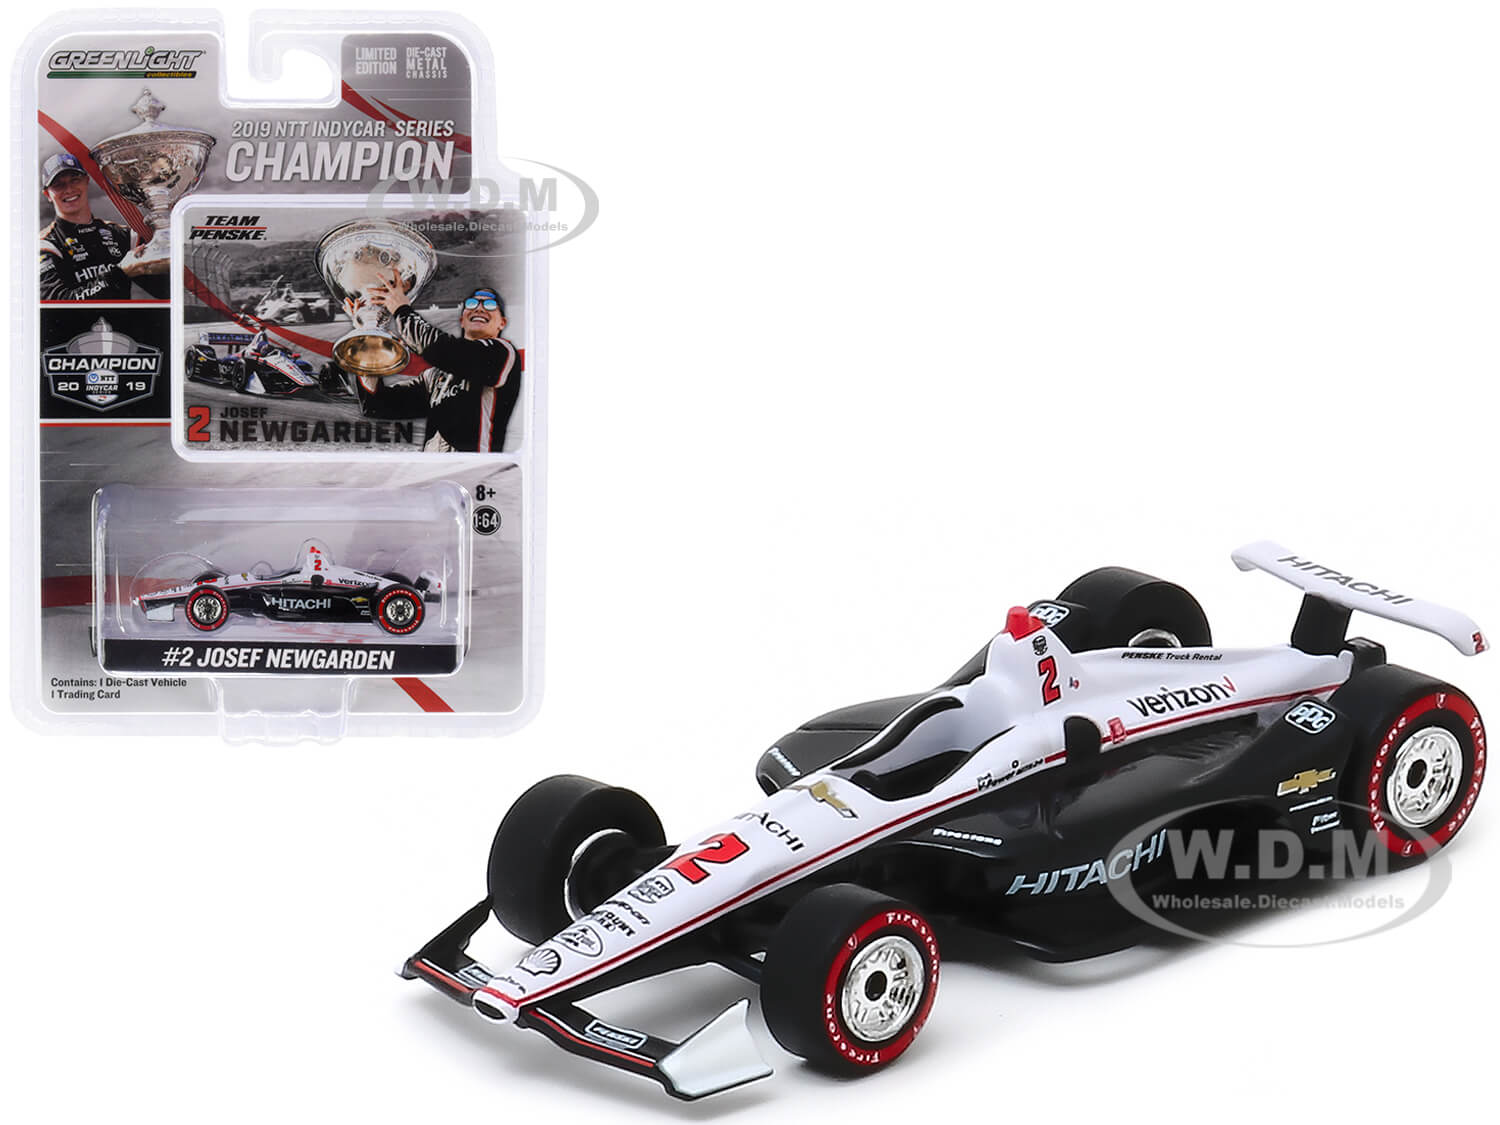 Dallara Indy Car #2 Josef Newgarden Hitachi Team Penske NTT IndyCar Series Champion (2019) 1/64 Diecast Model Car by Greenlight